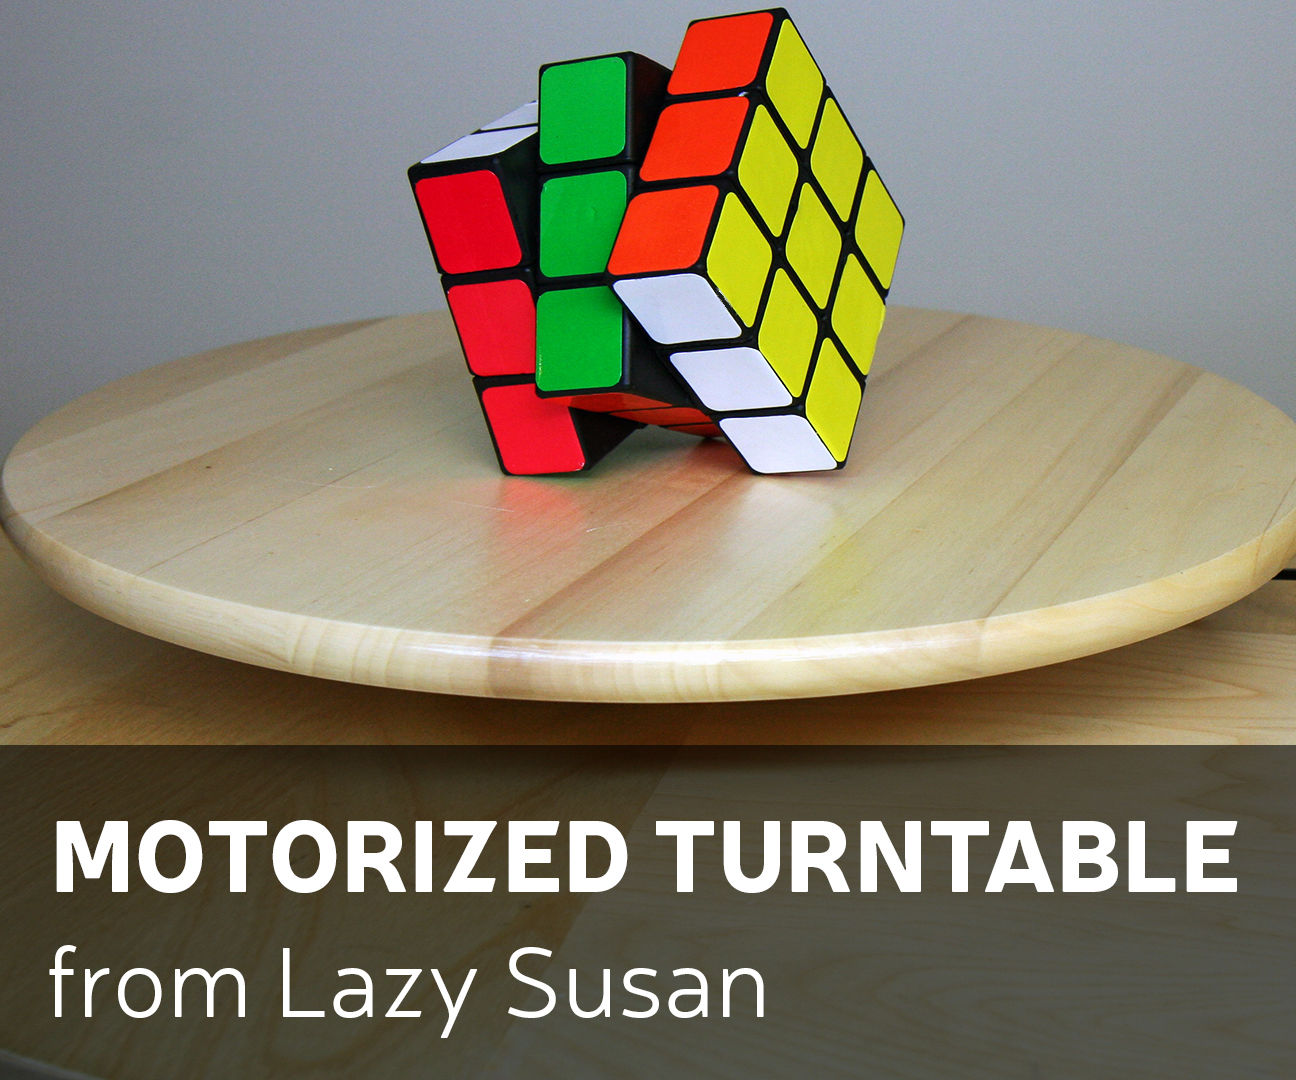 How to Make Motorized Turntable From Lazy Susan